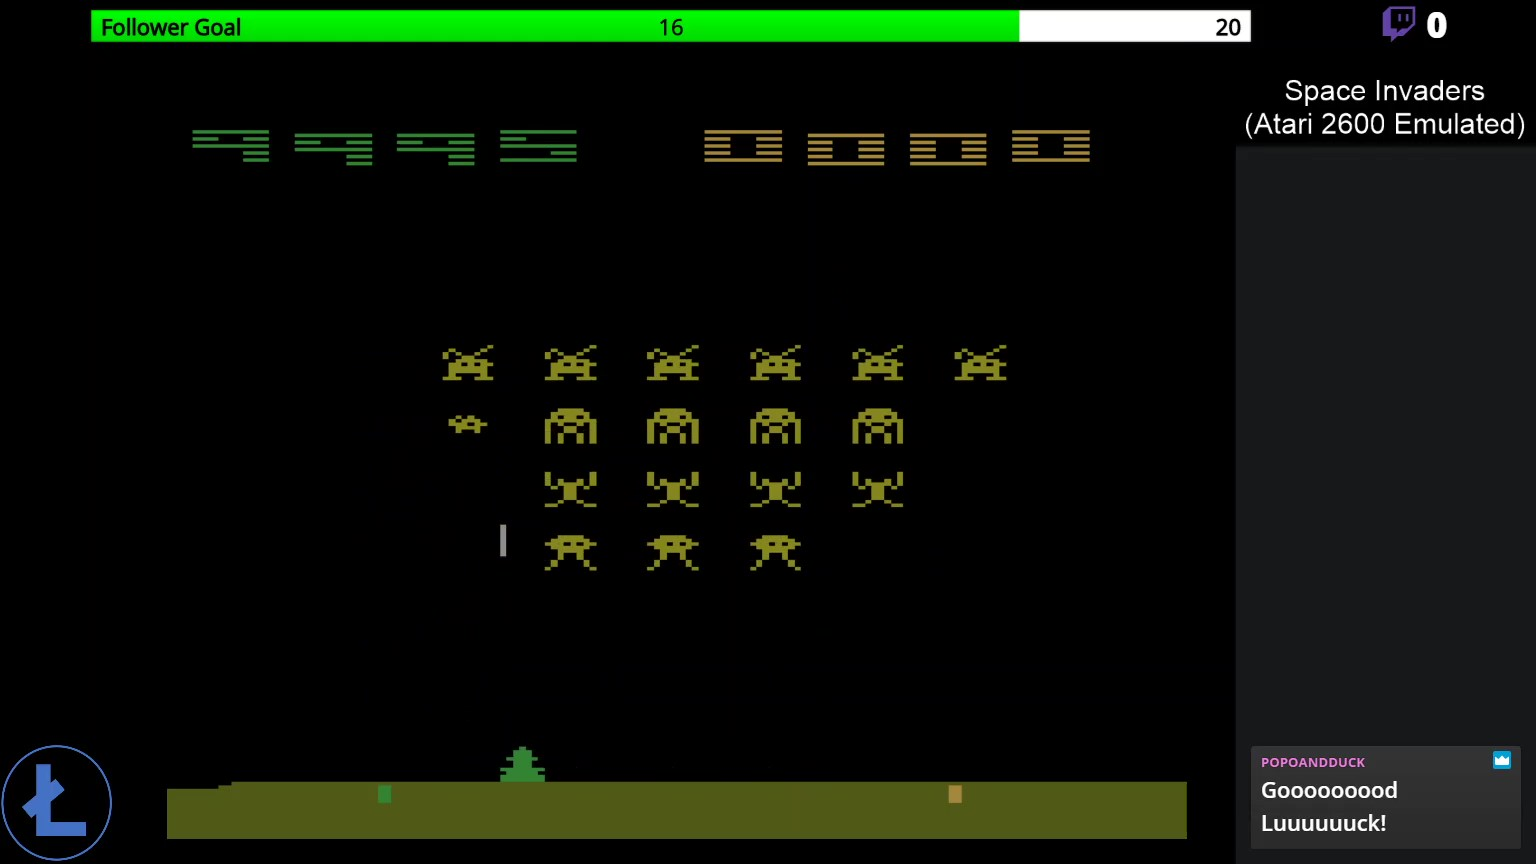 LonestarVideogames: Space Invaders [Cart-Fry: Double Shots] (Atari 2600 Emulated Novice/B Mode) 9,995 points on 2020-03-14 12:22:40